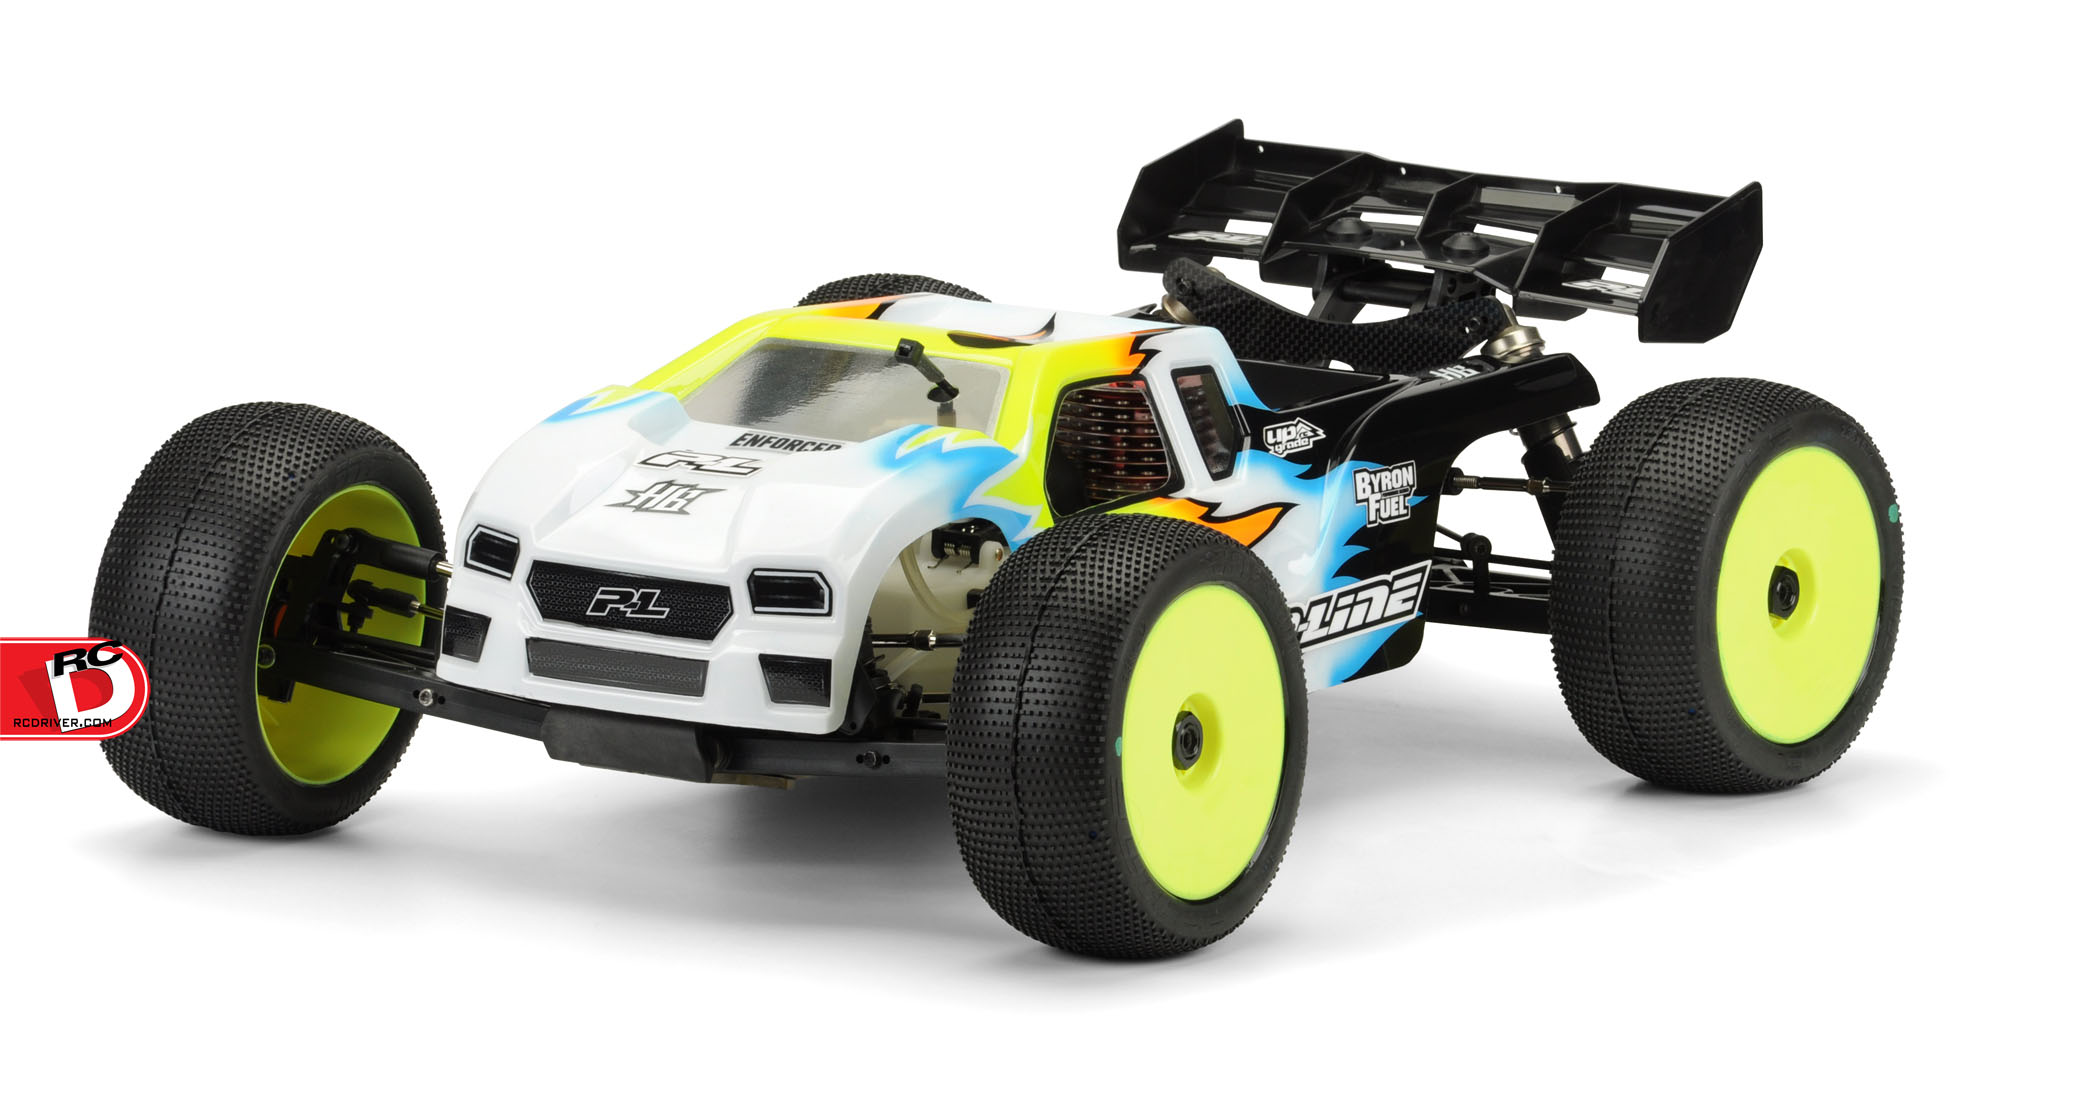 The Pro-Line Enforcer Truggy Body